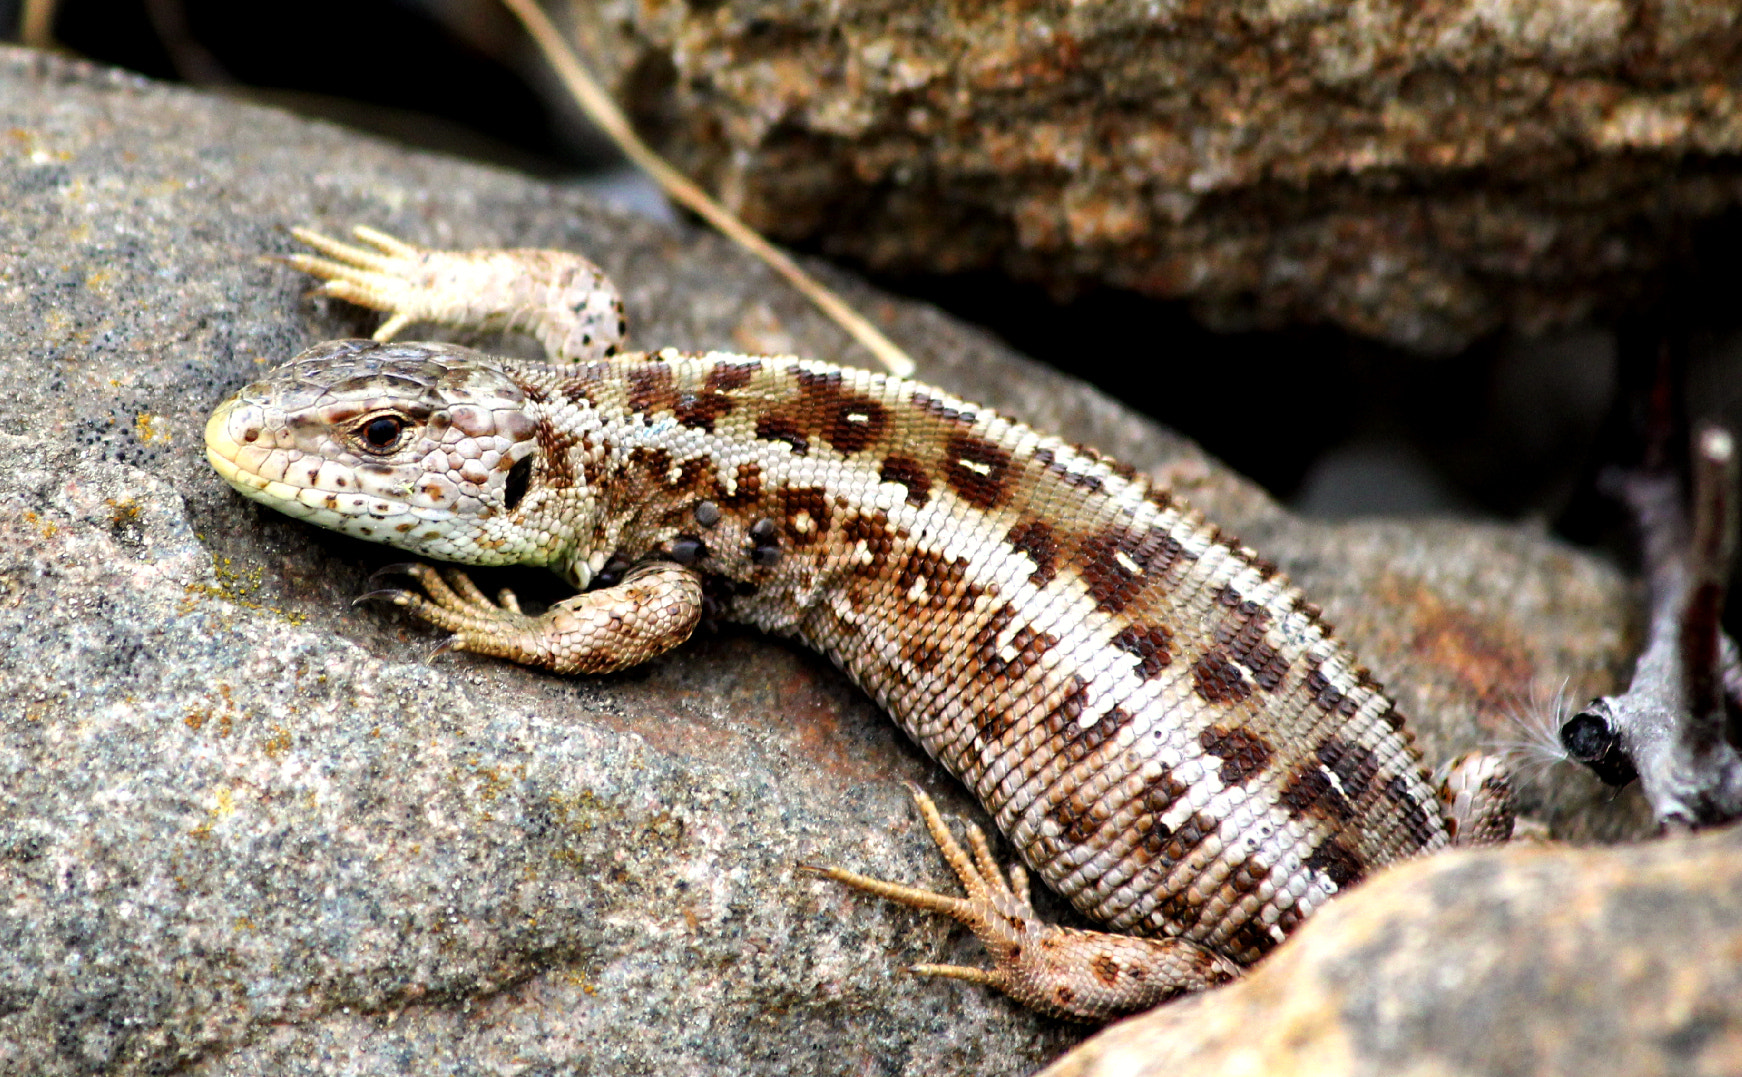 Photograph Lizard on a warm stone  by Tanja Nevermore on 500px